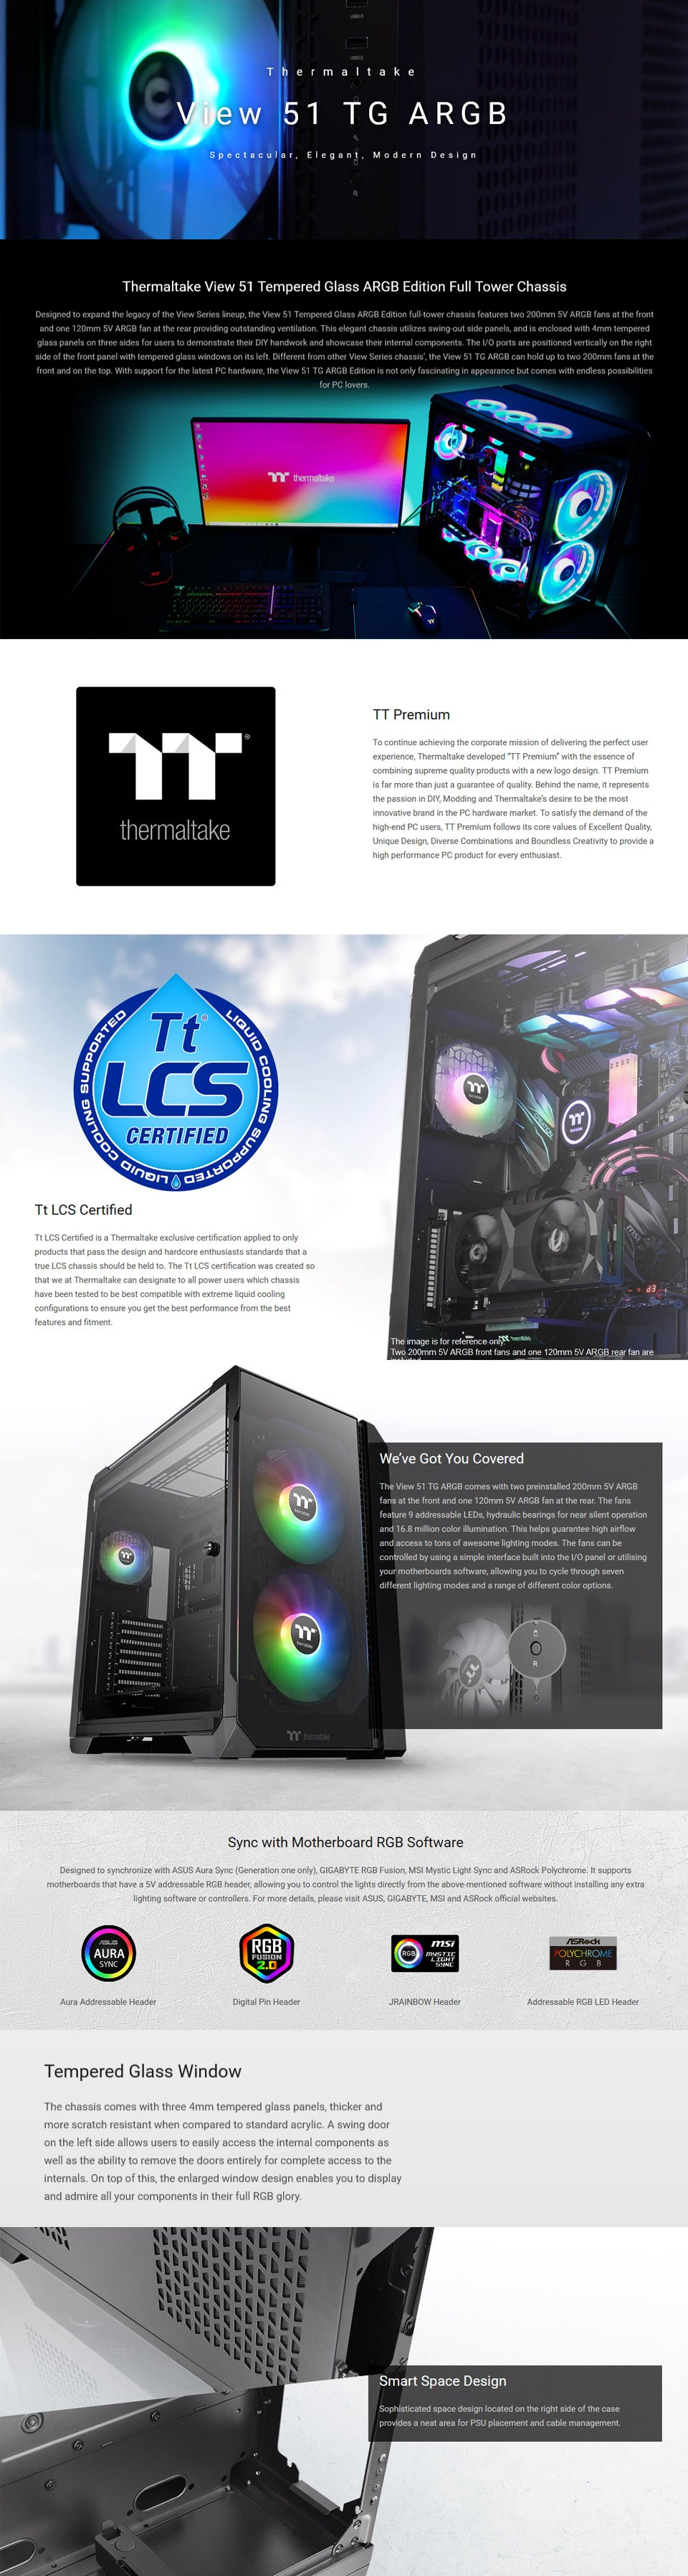 Thermaltake View 51 A-RGB Tempered Glass Case Black features